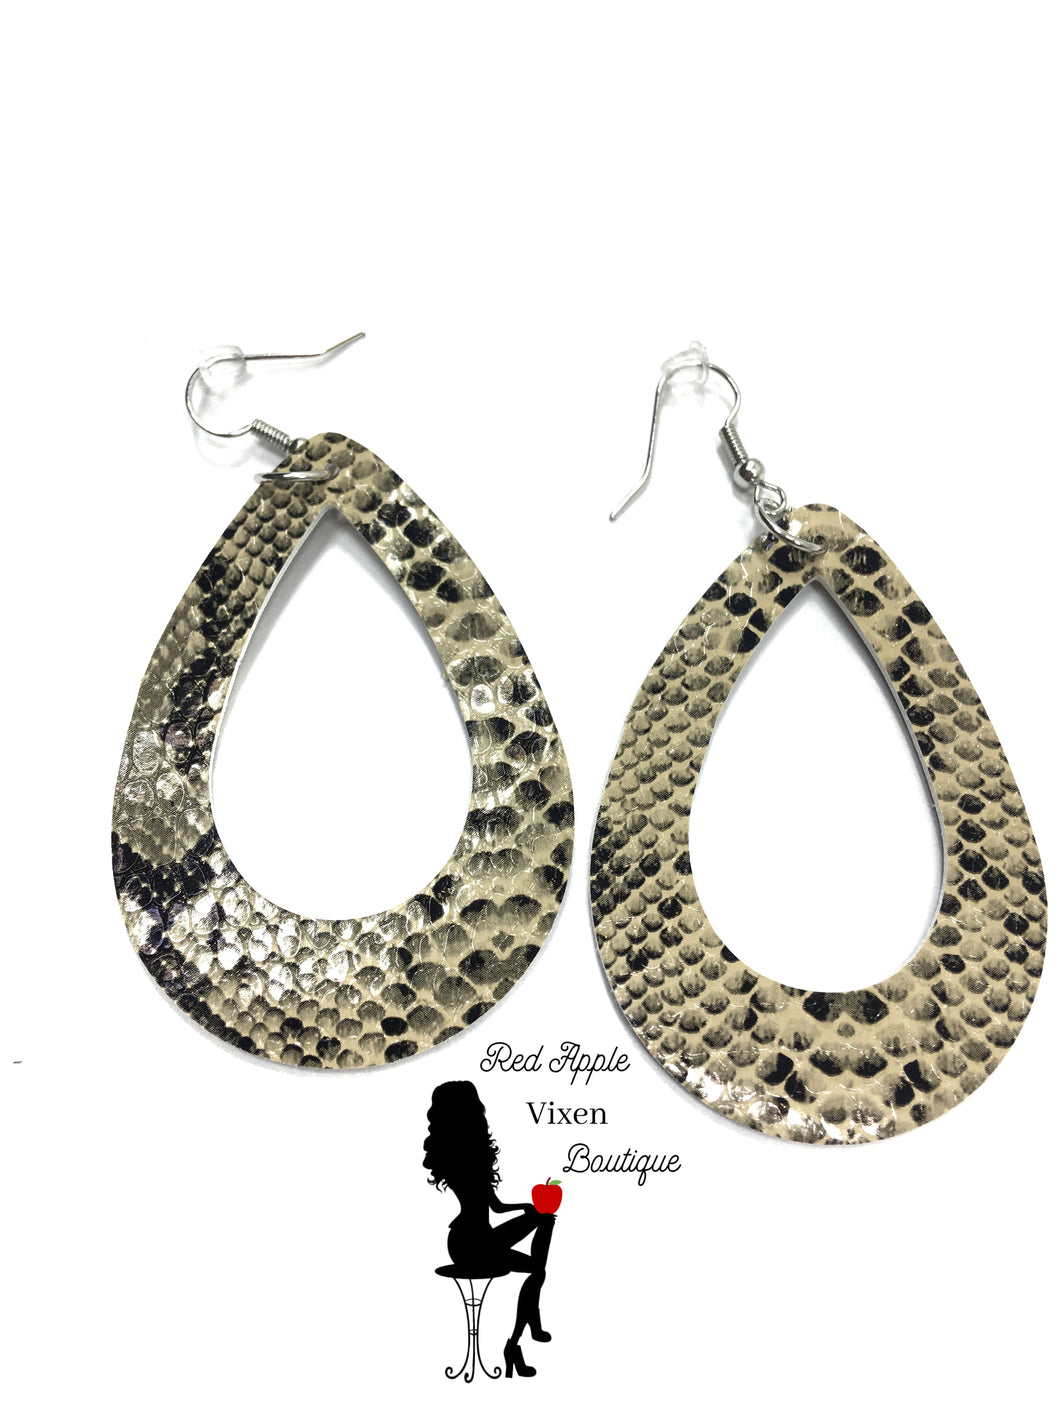 Leather Snake Skin Print Earrings - Red Apple Vixen Boutique